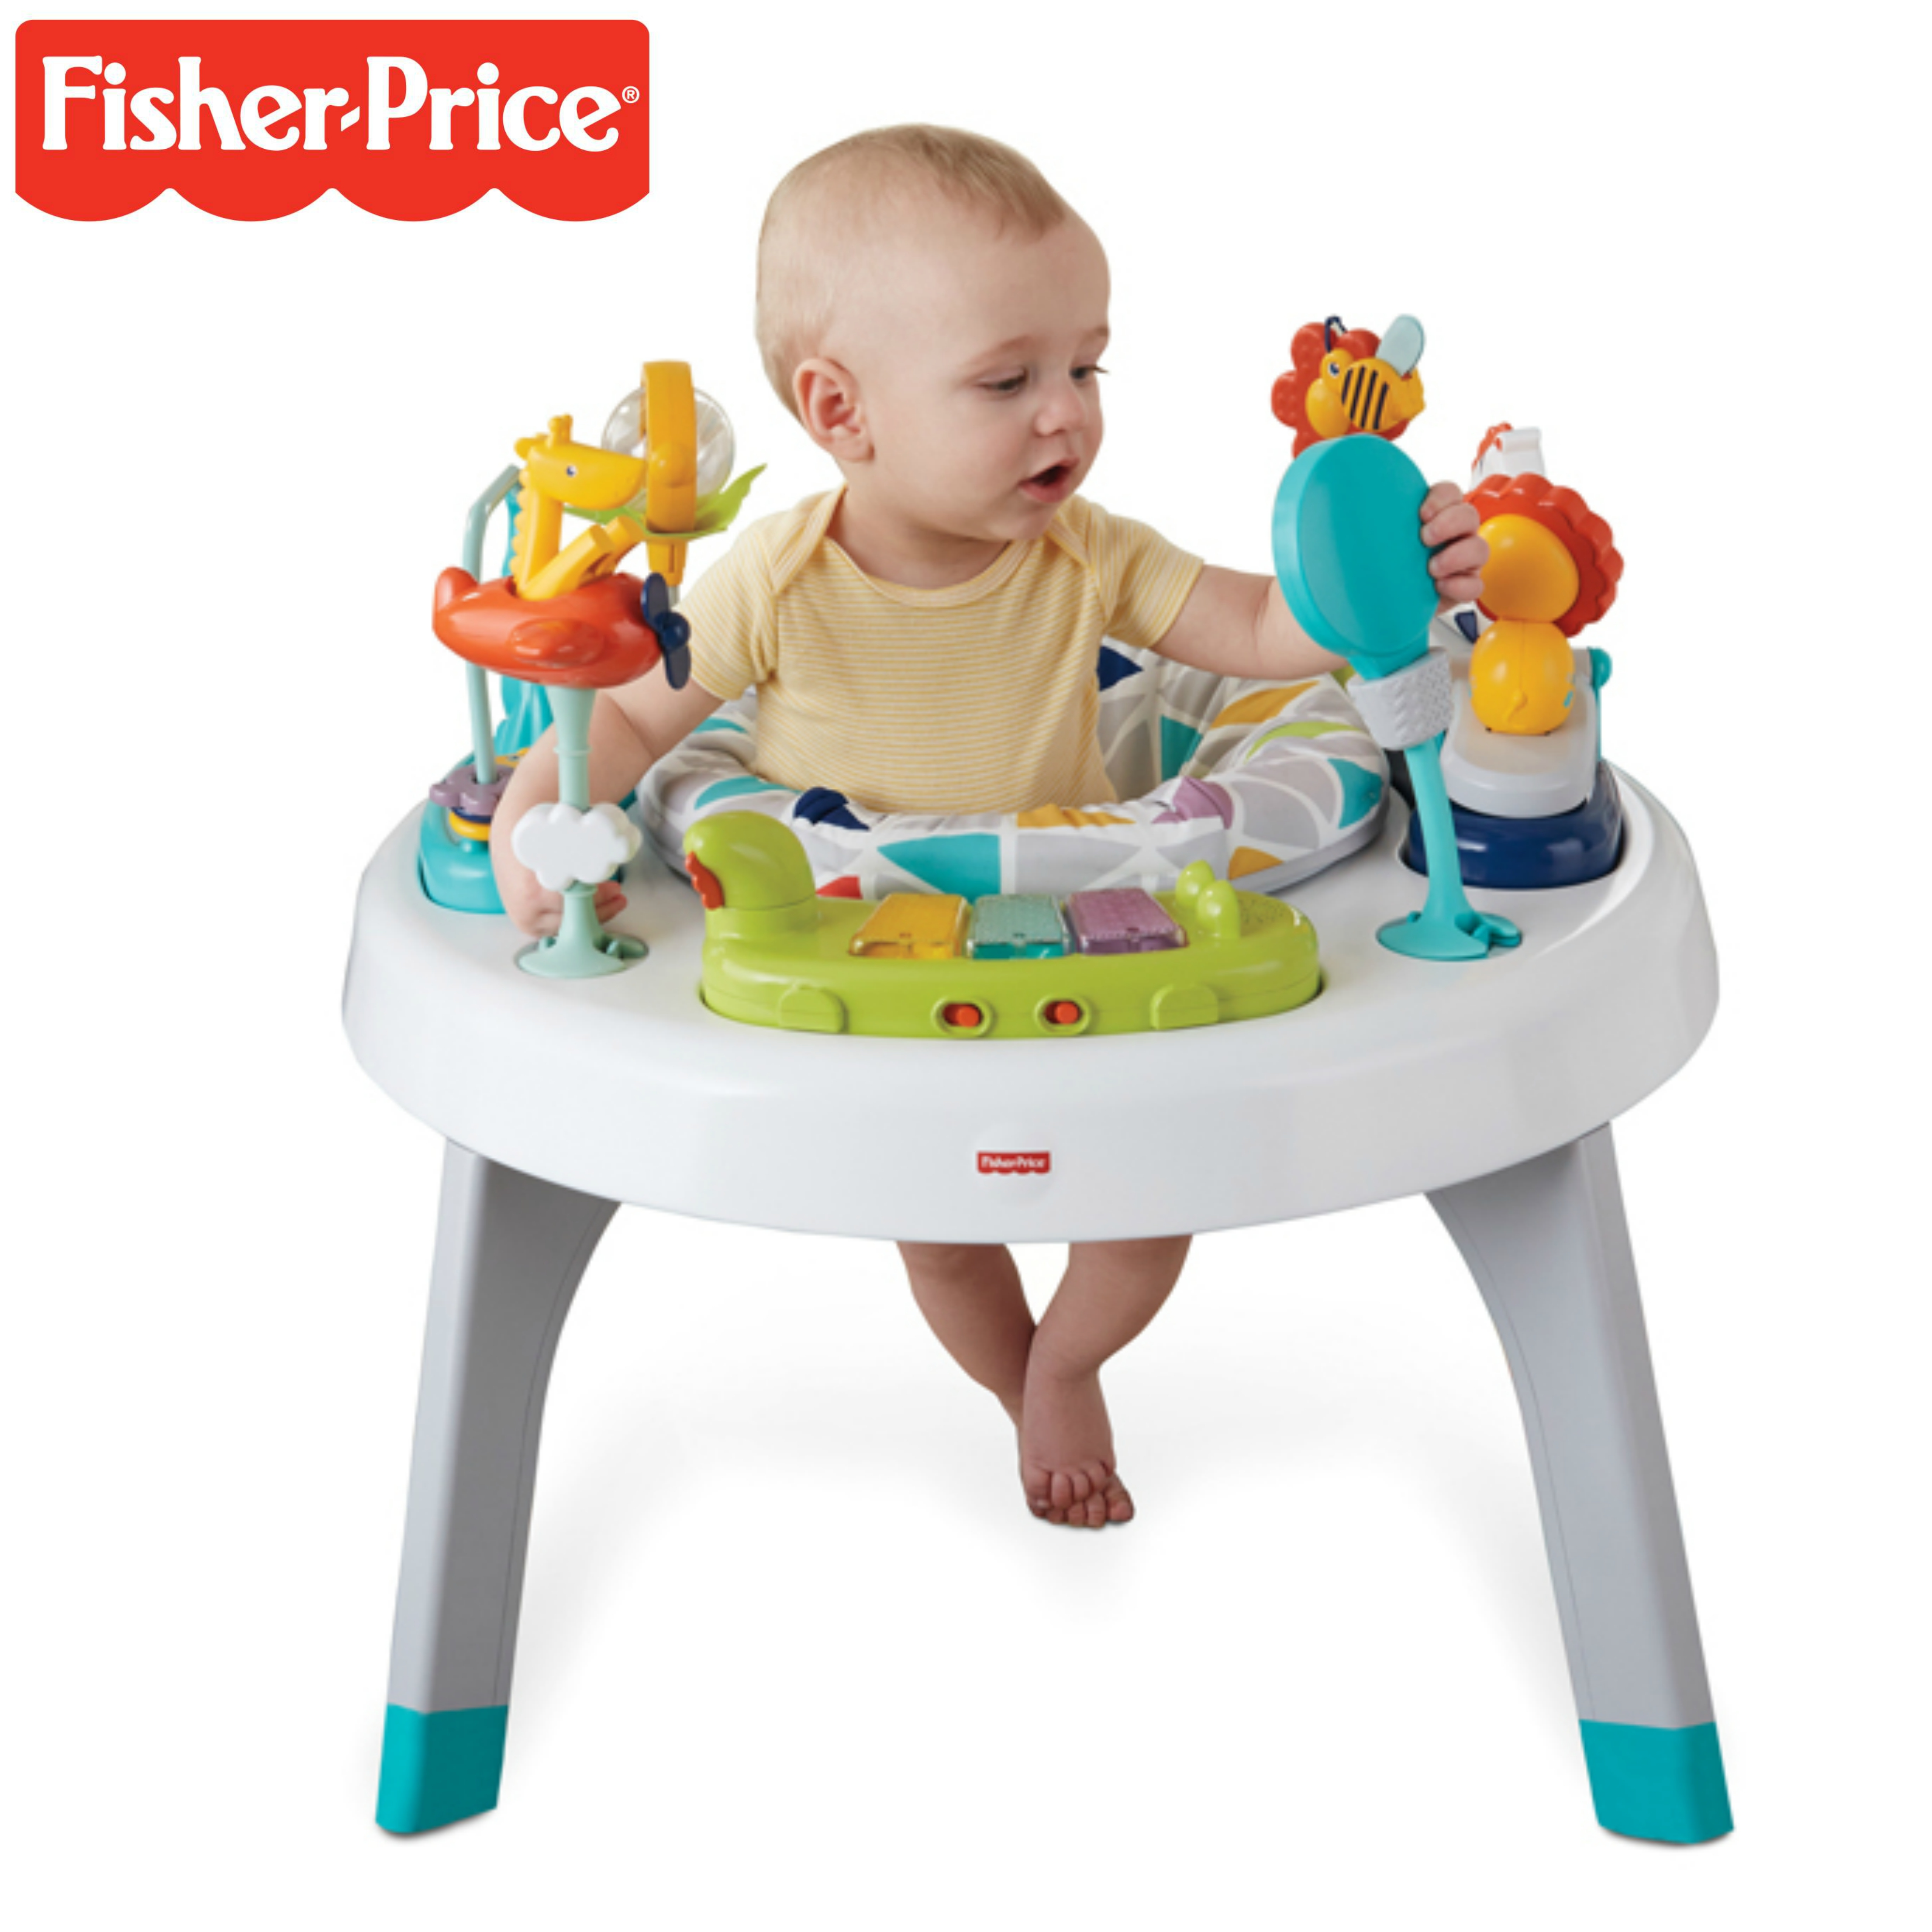 Fisher-Price 2-in-1 Sit to Stand Activity Centre | Toddler/Baby activity table | New